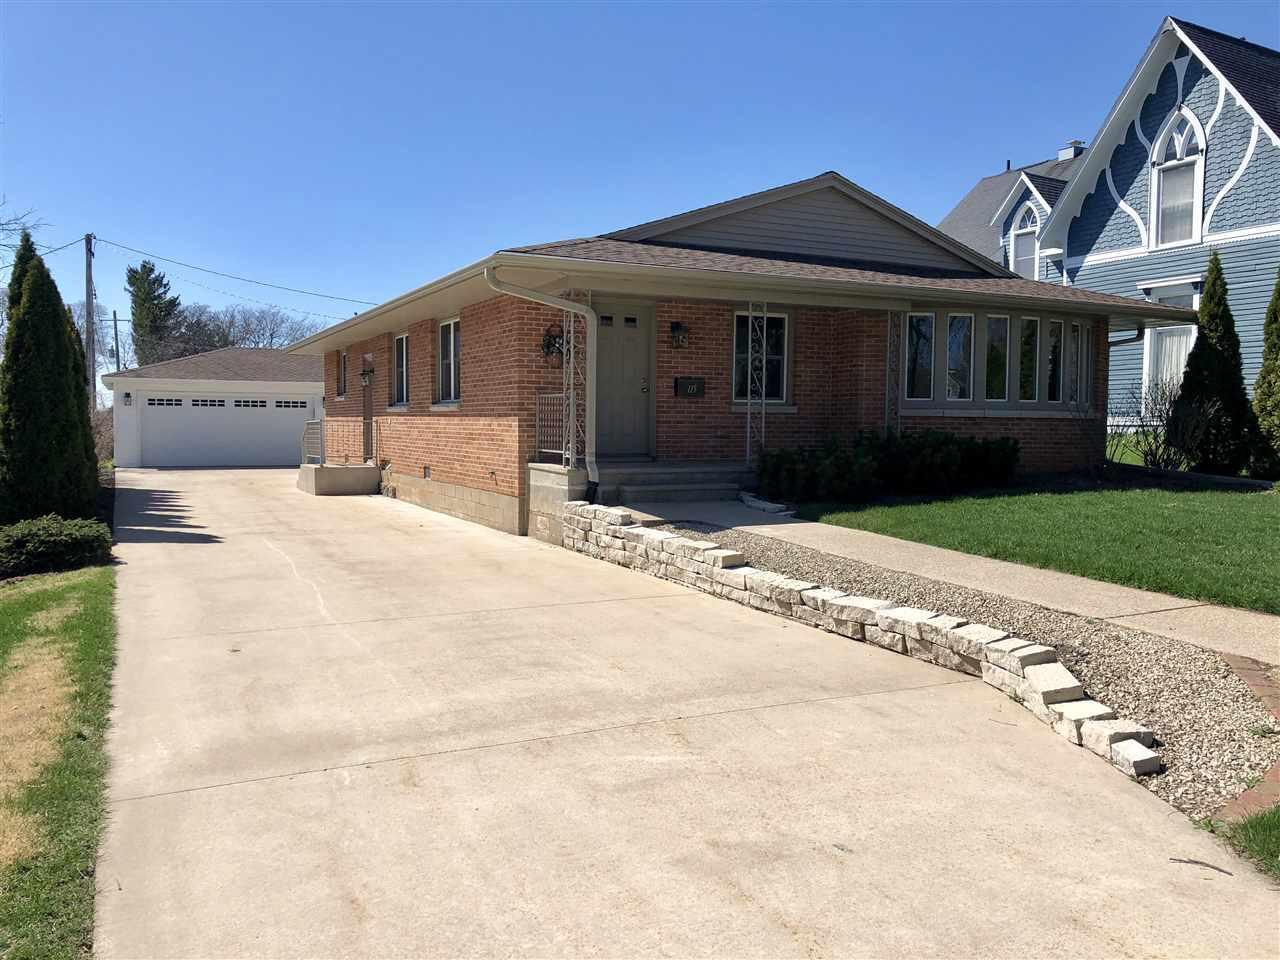 Local Real Estate: Homes for Sale — Berlin, WI — Coldwell Banker